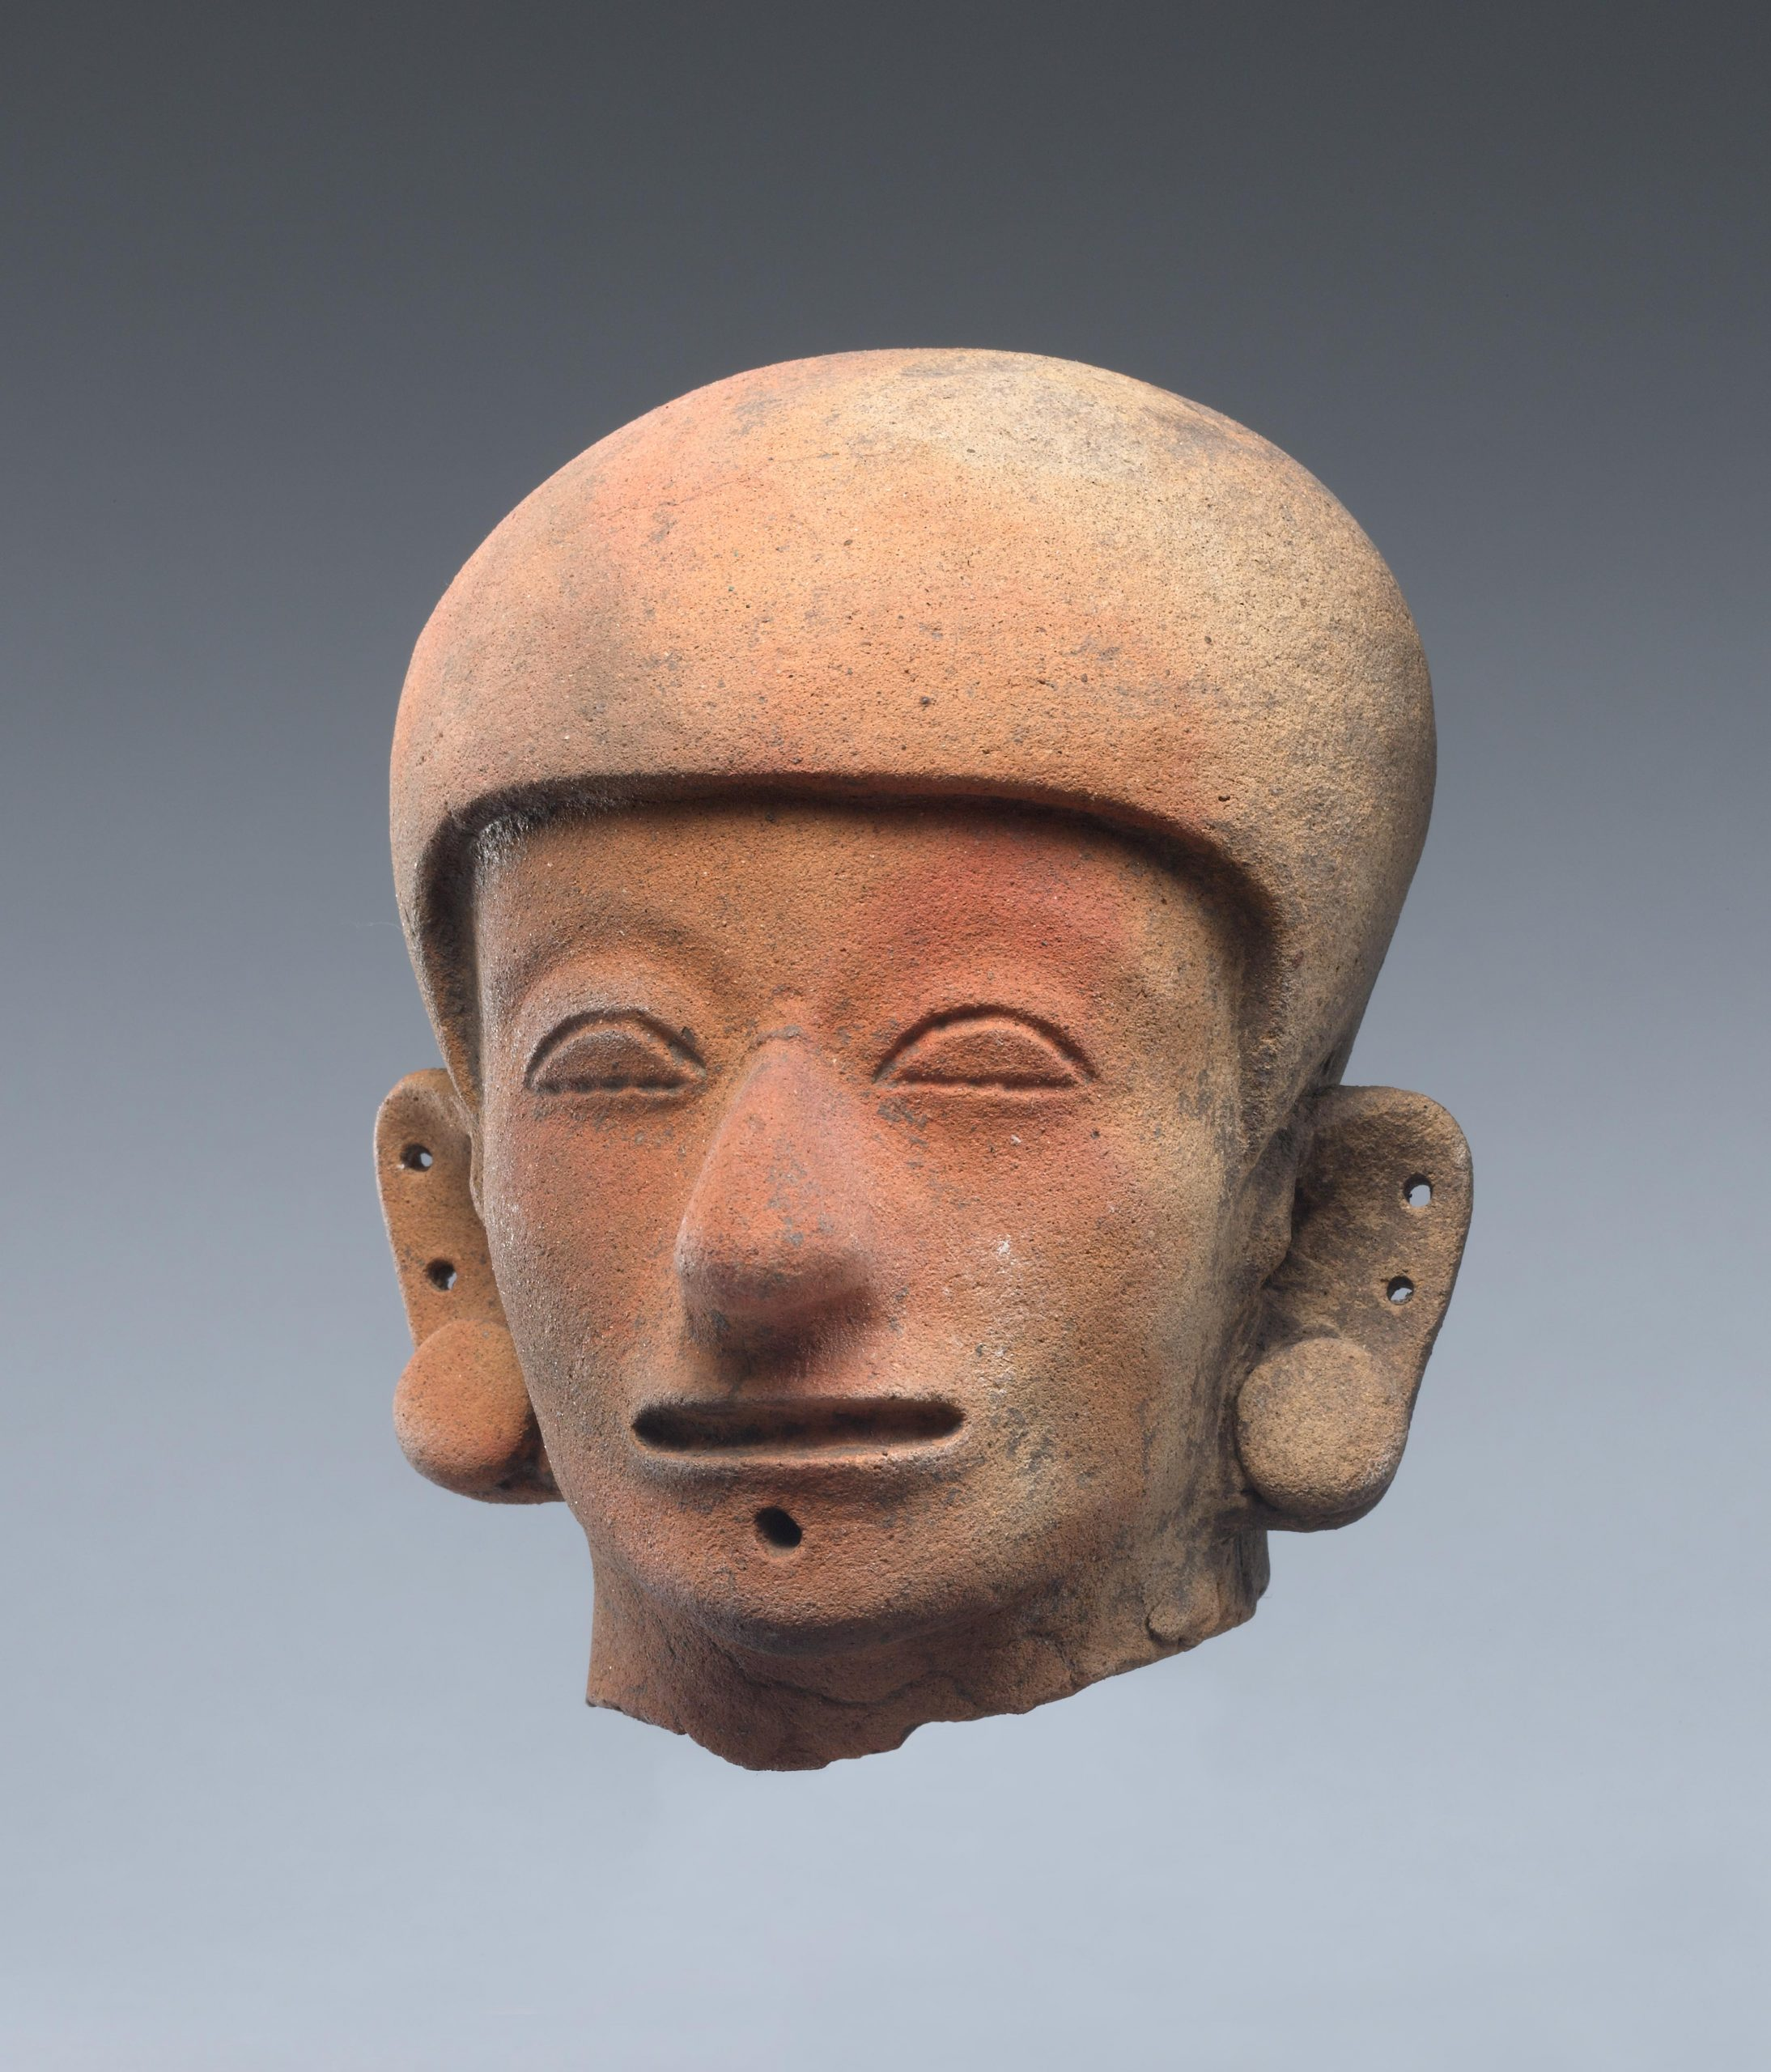 Ceramic human head wearing a helmet and ear spools.